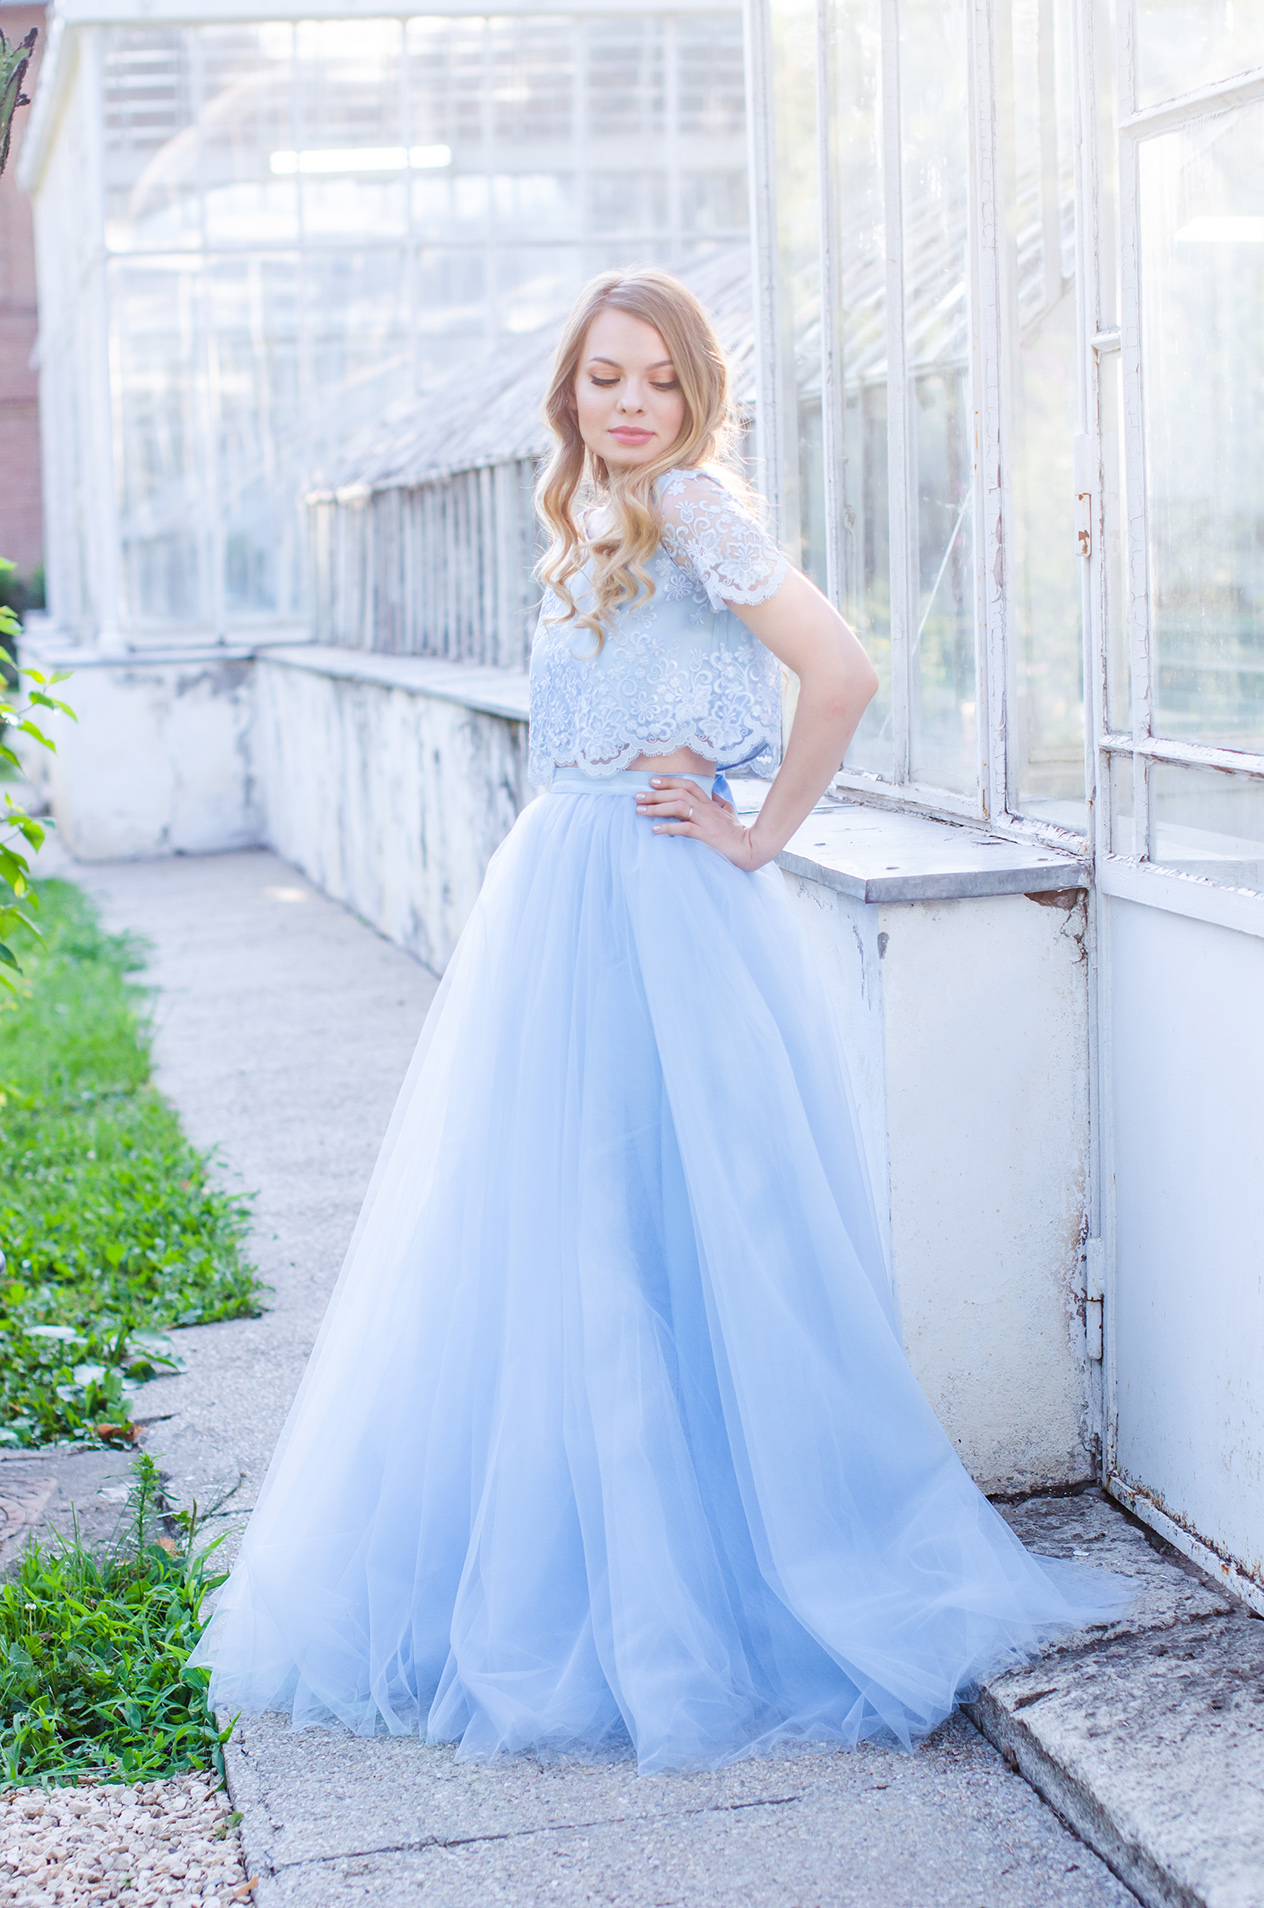 pink-wish-collection-blue-tulle-skirt-lace-top-wedding-princess-dress (21)